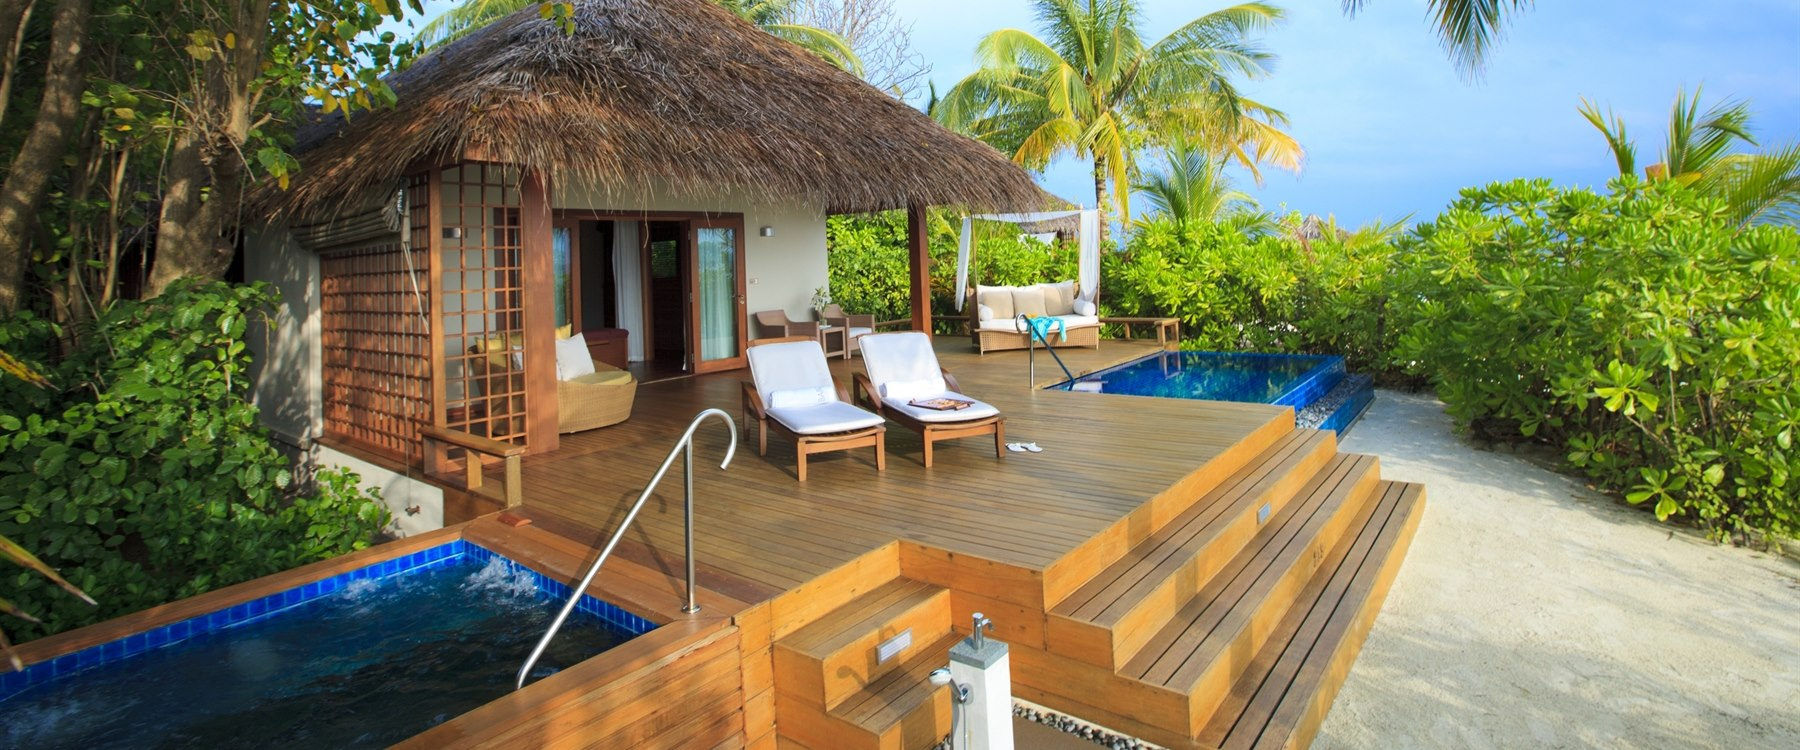 front view of private sun deck at Baros, Maldives